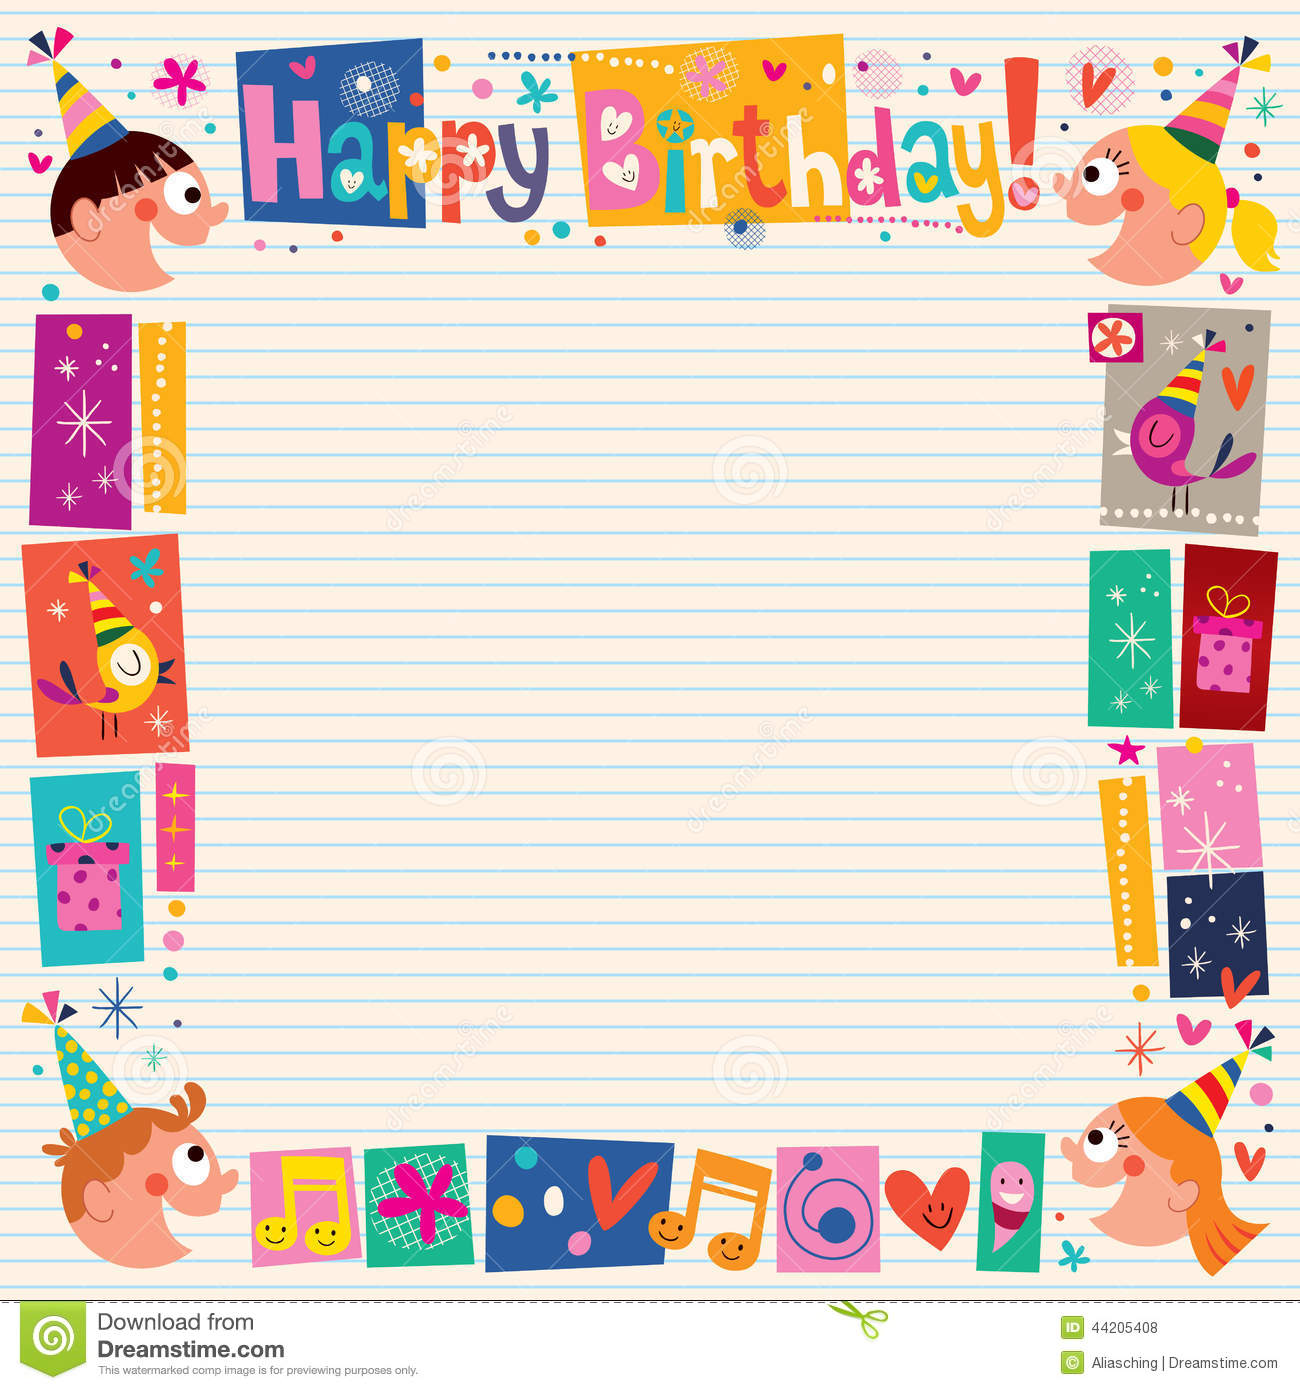 birthday border design ; happy-birthday-kids-decorative-border-design-element-44205408